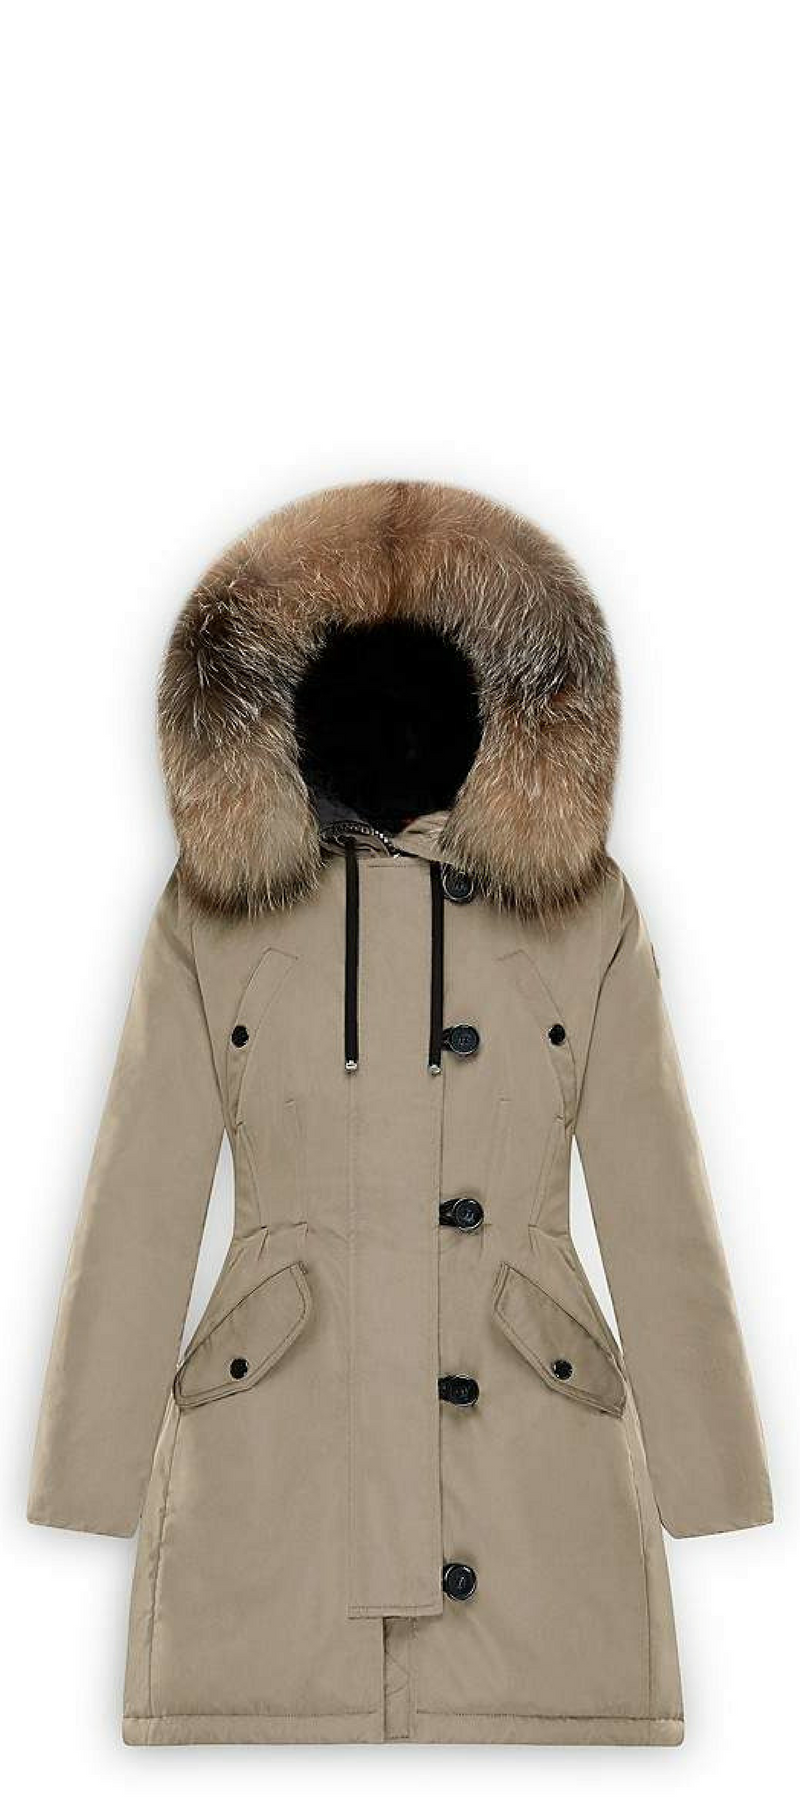 MONCLER winter jacket, COOL! Winter jackets, Jackets